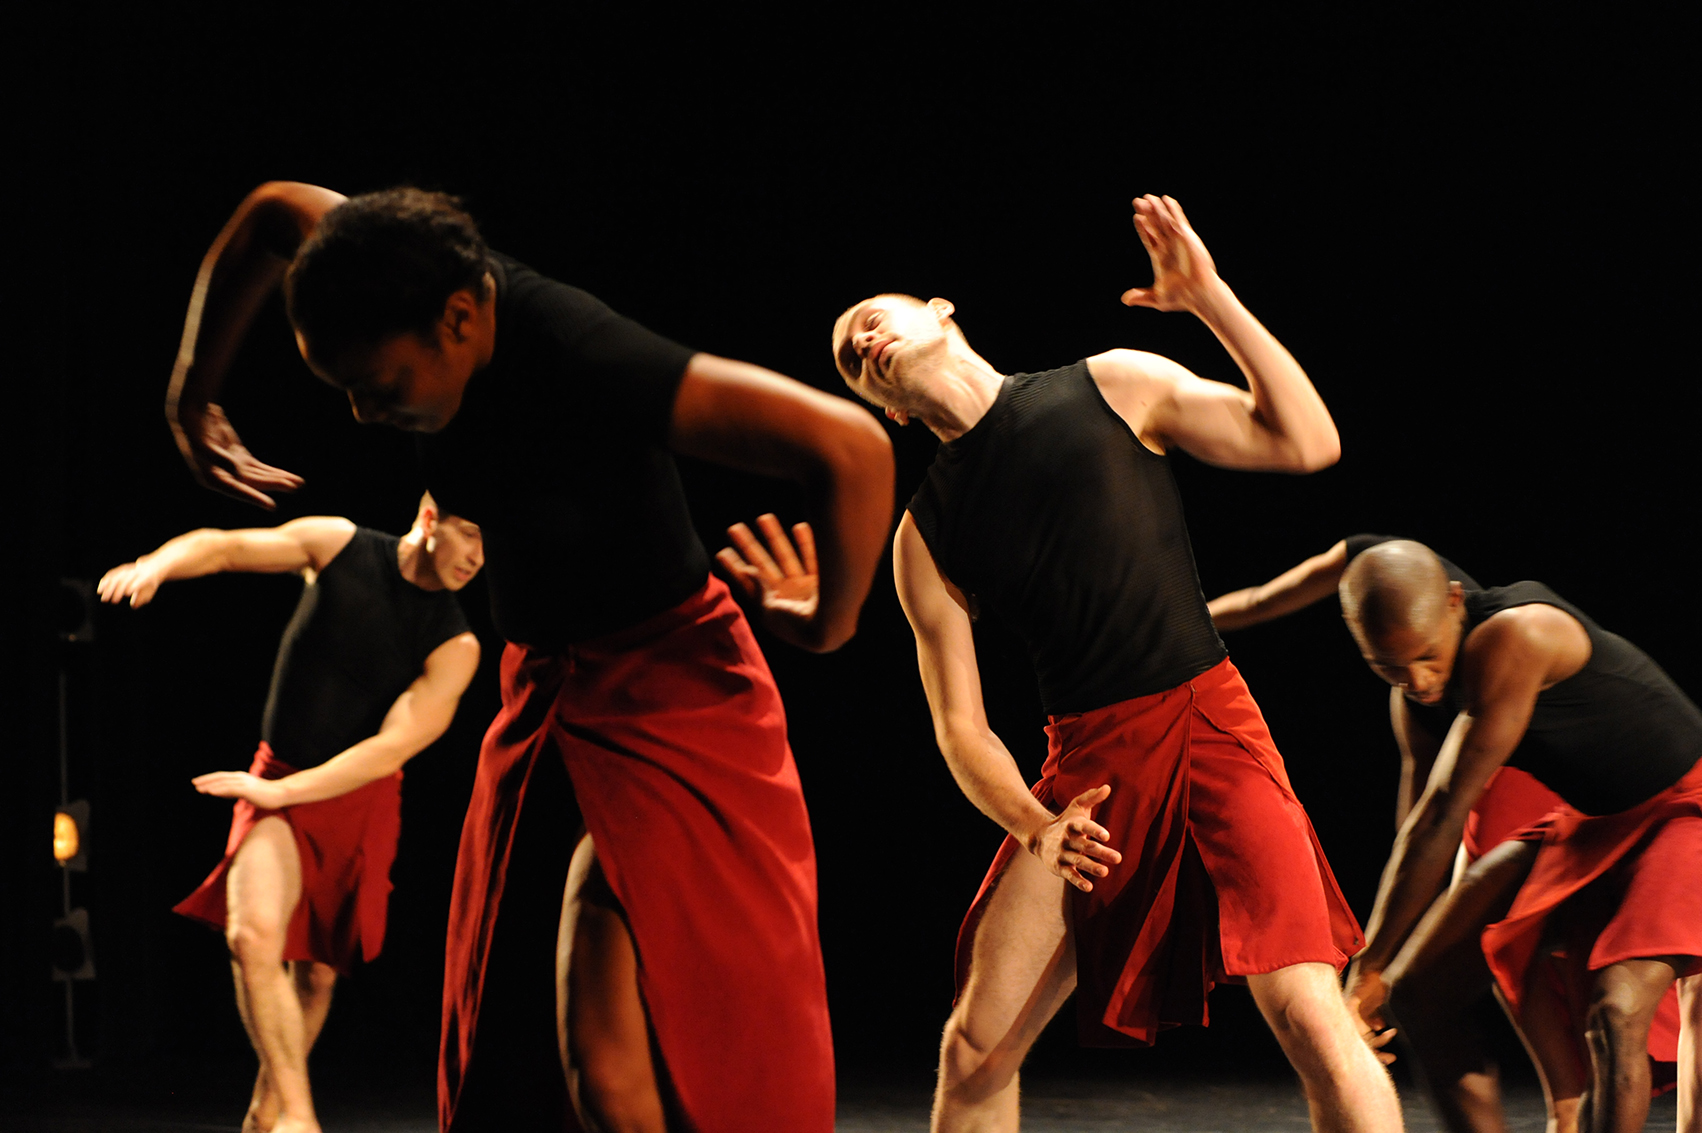 TDT-2012-Vena Cava TDT-Artists- Photo-Guntar Kravis.jpg